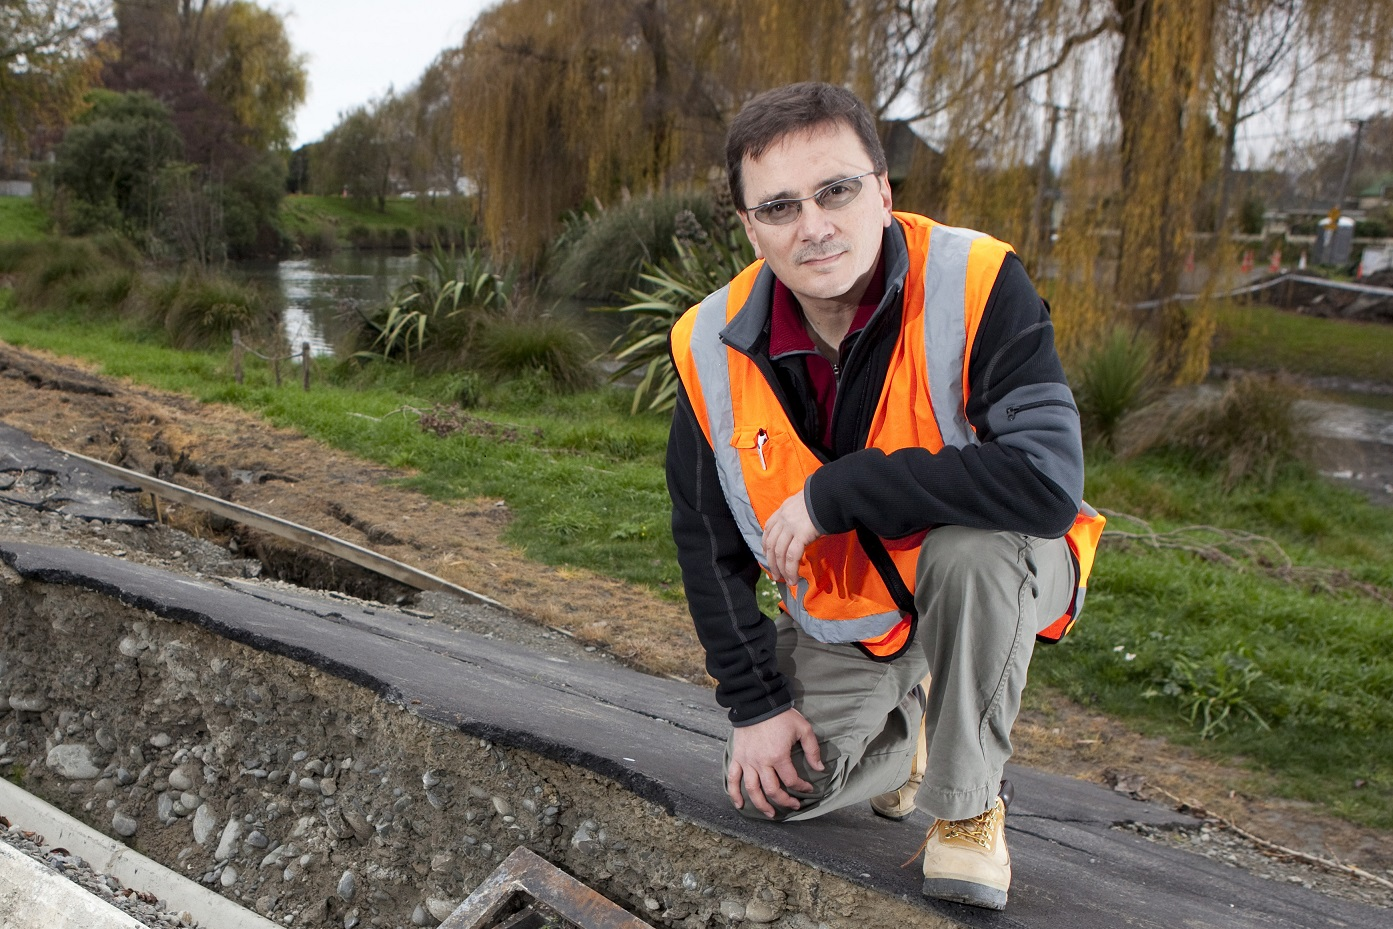 UC Civil Engineering Professor Misko Cubrinovski, pictured in 2011, has won a prestigious international engineering award in the United States. (Photo credit: University of Canterbury)